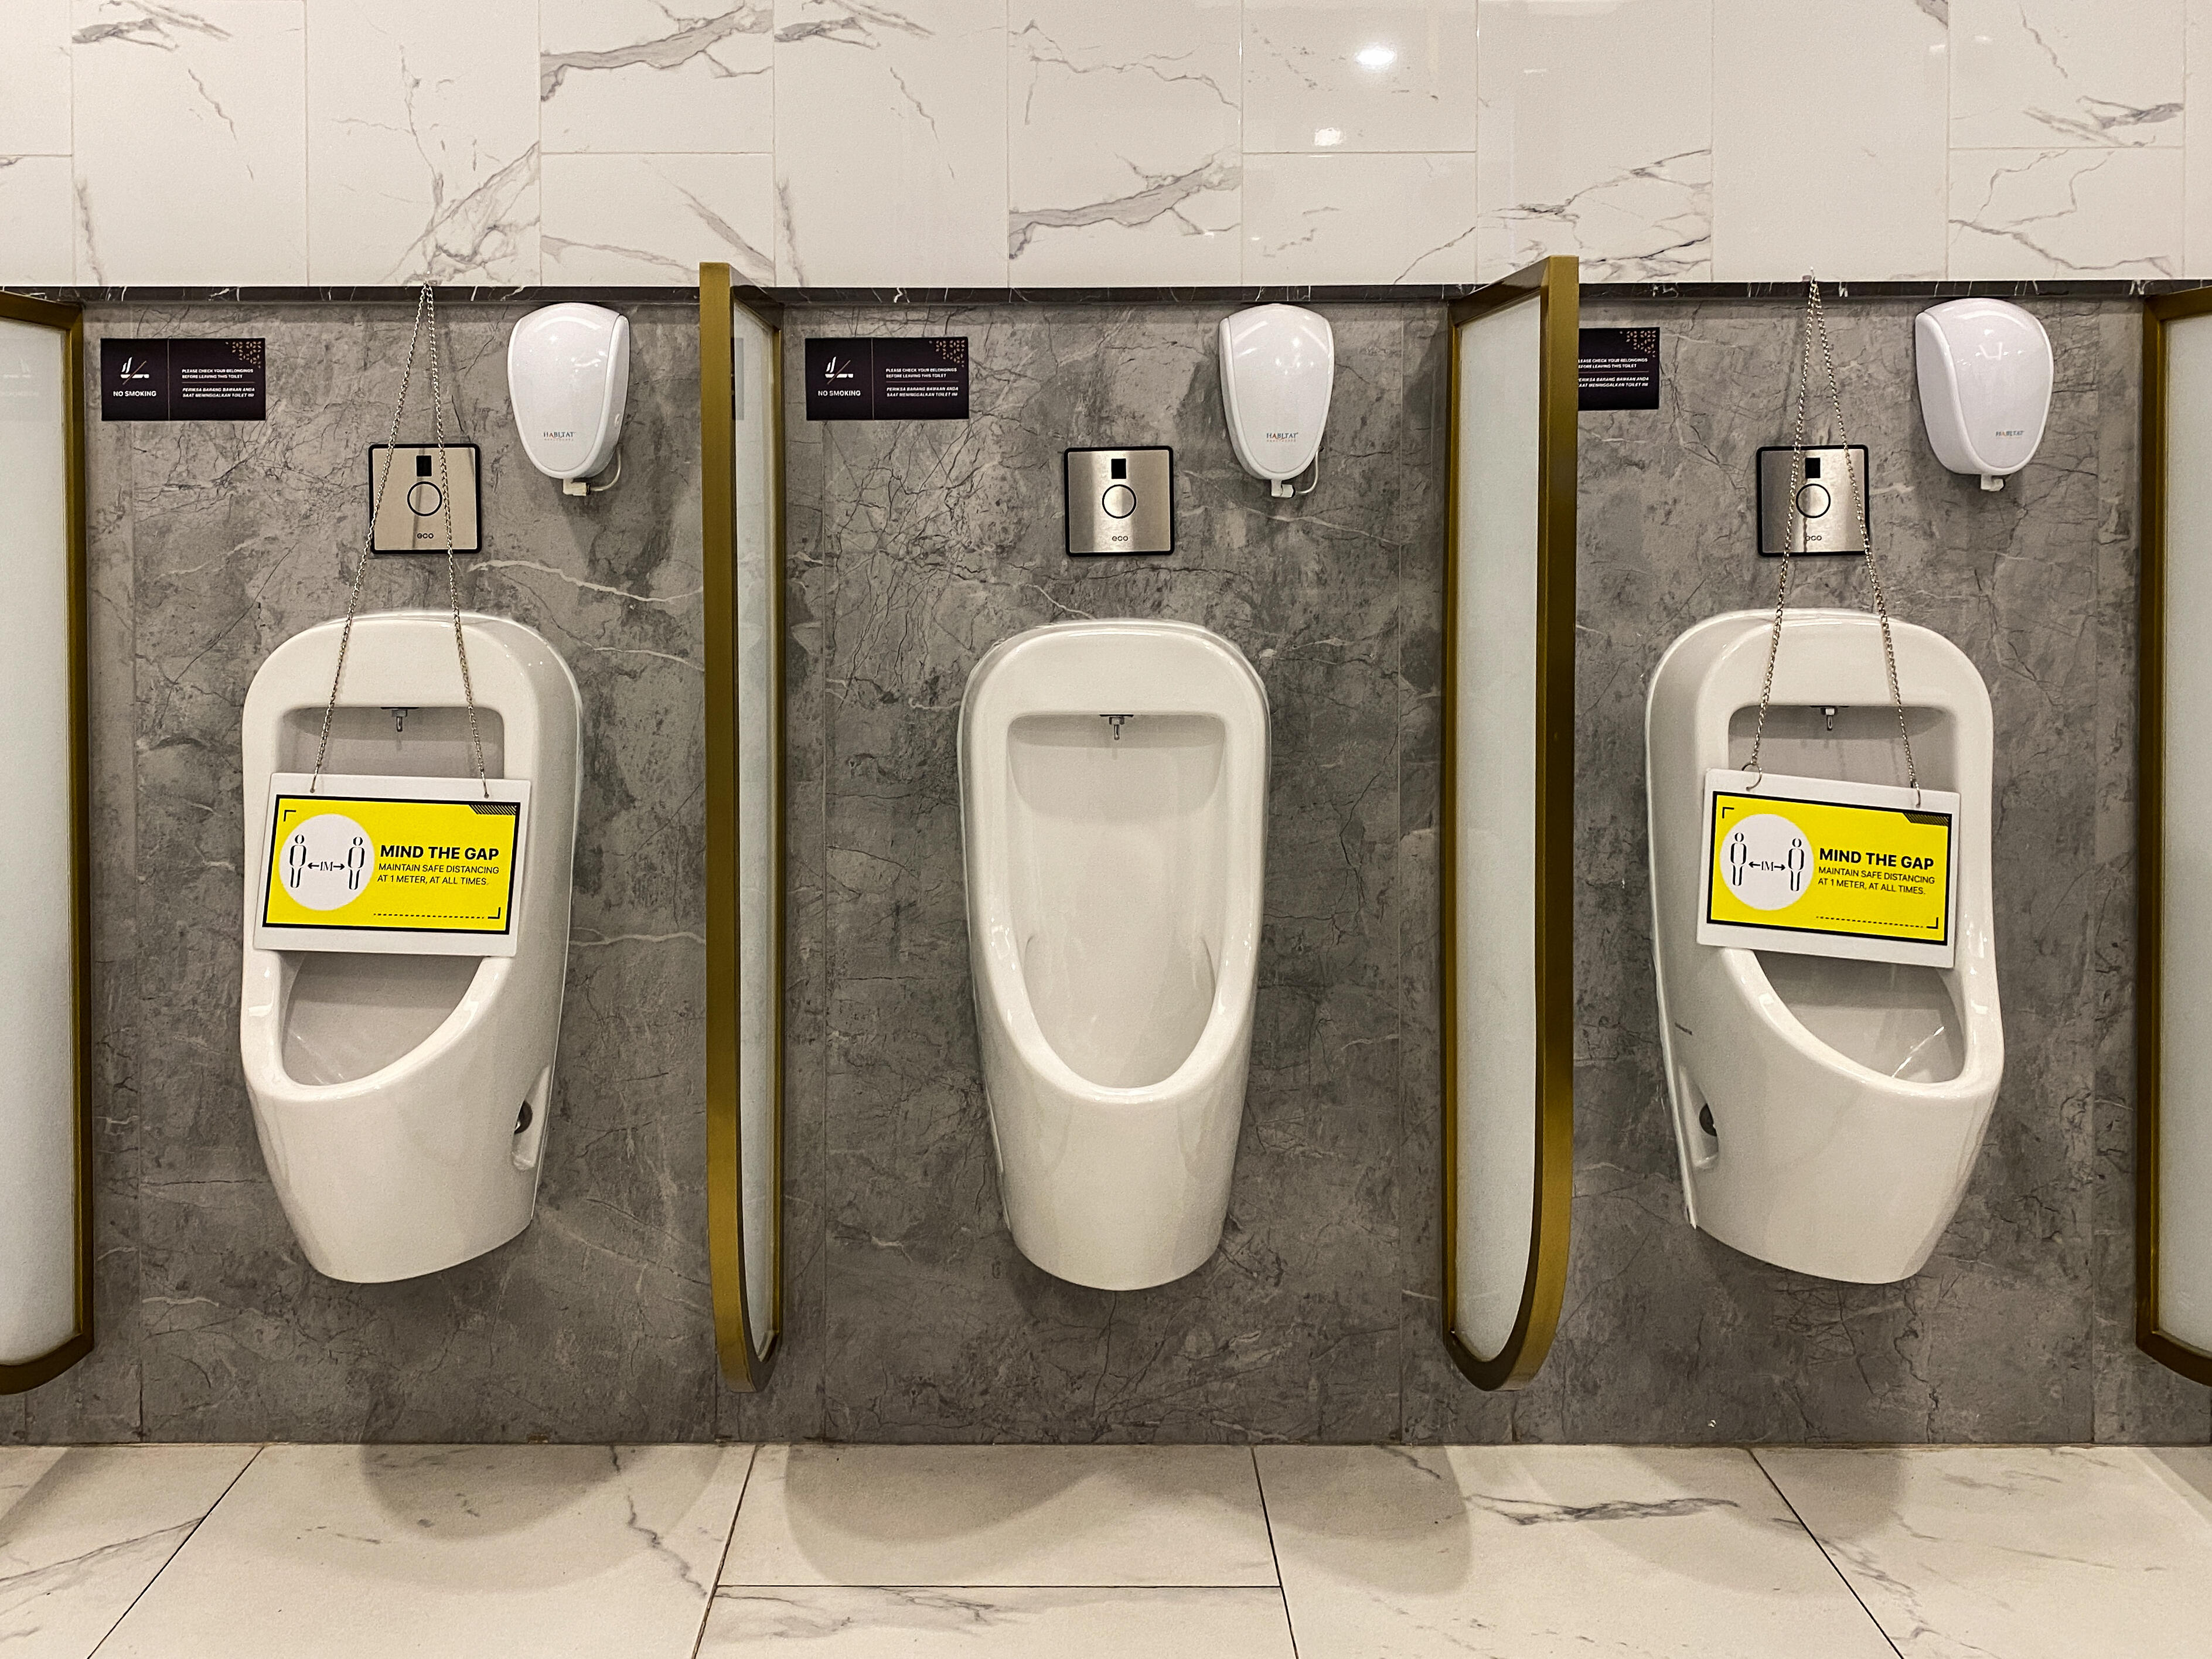 Indonesia: Not all mall urinals can be used